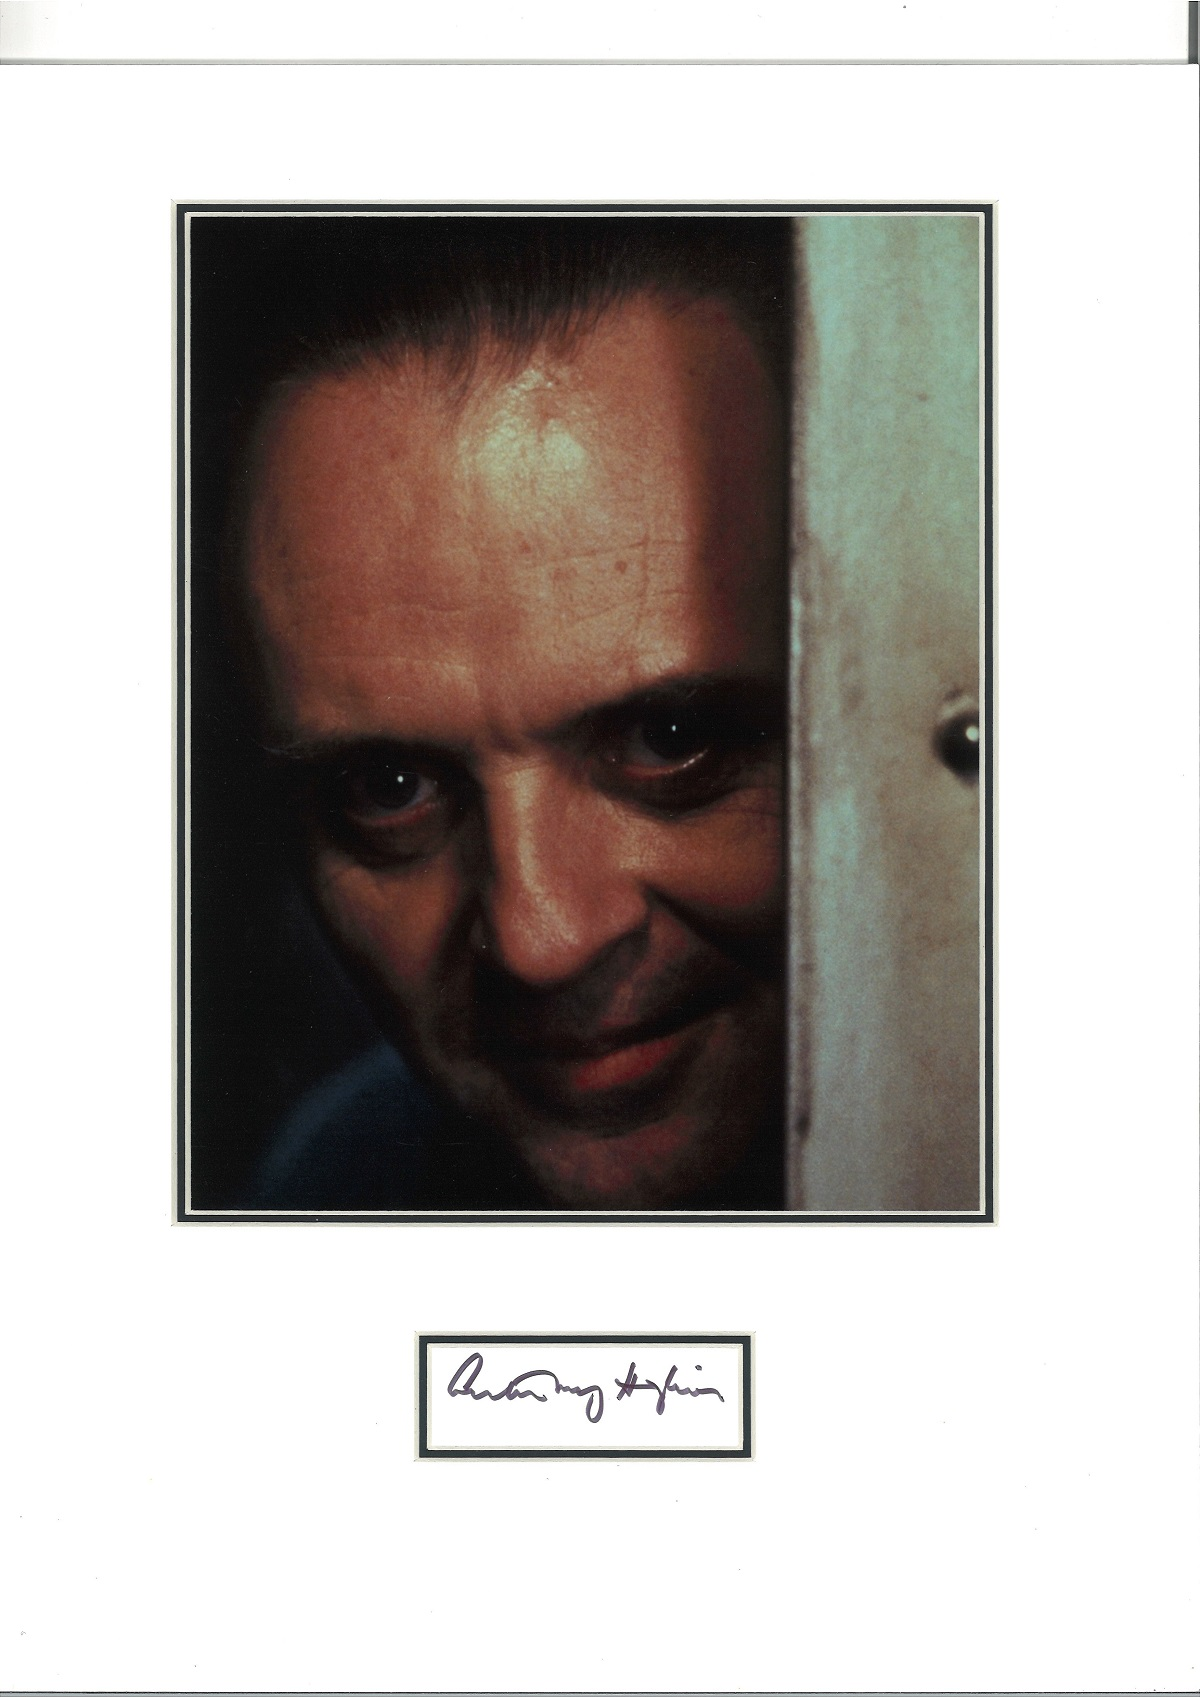 Anthony Hopkins 16x12 mounted signature piece includes fantastic Silence of the Lambs colour photo